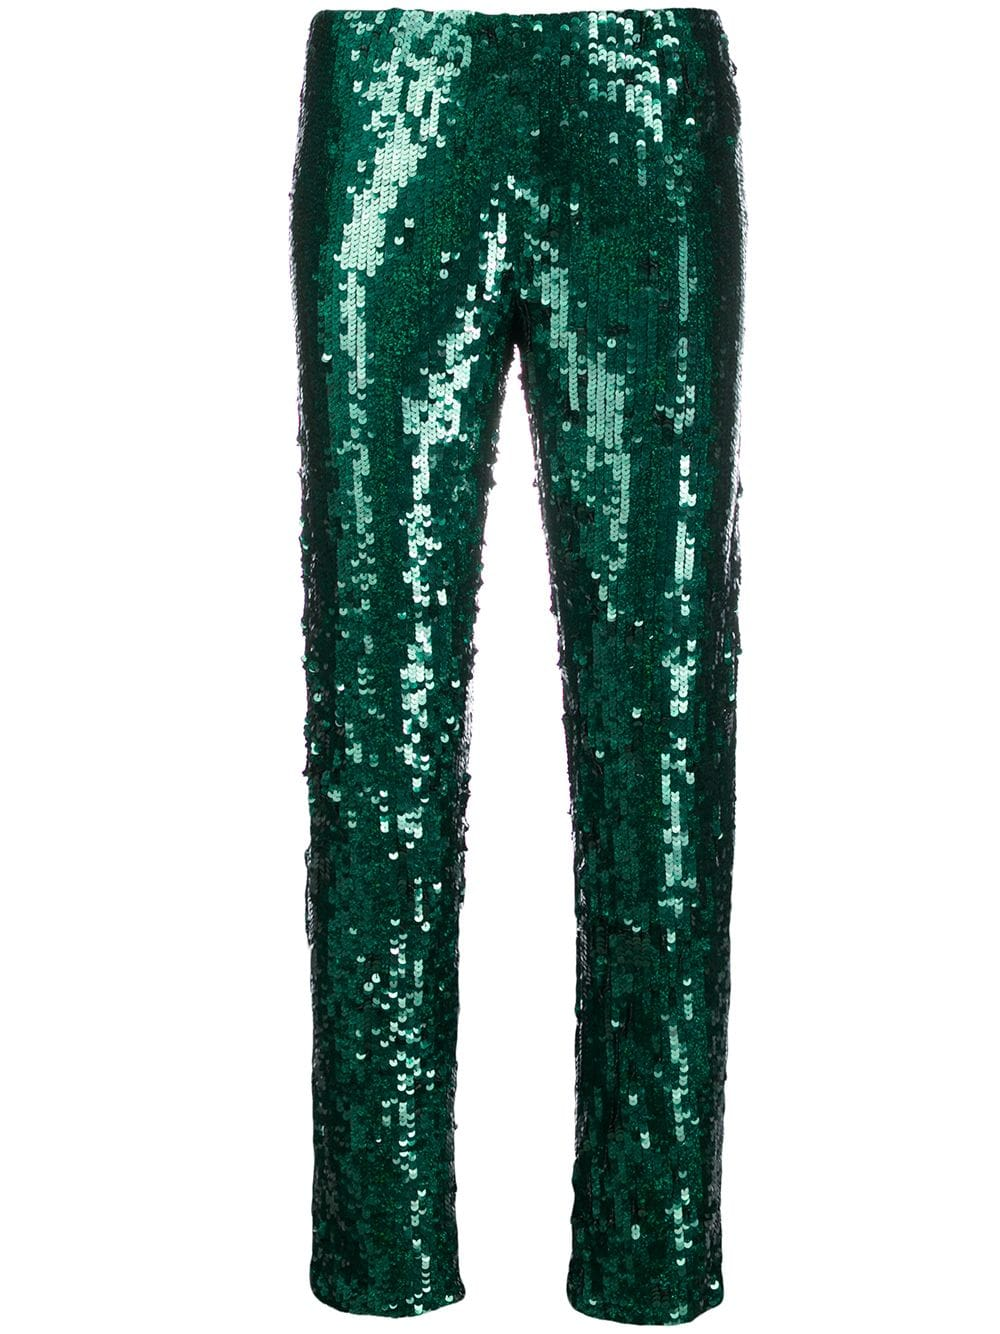 Jewel Tones for the Holidays, emerald green, P.A.R.O.S.H green sequin pants